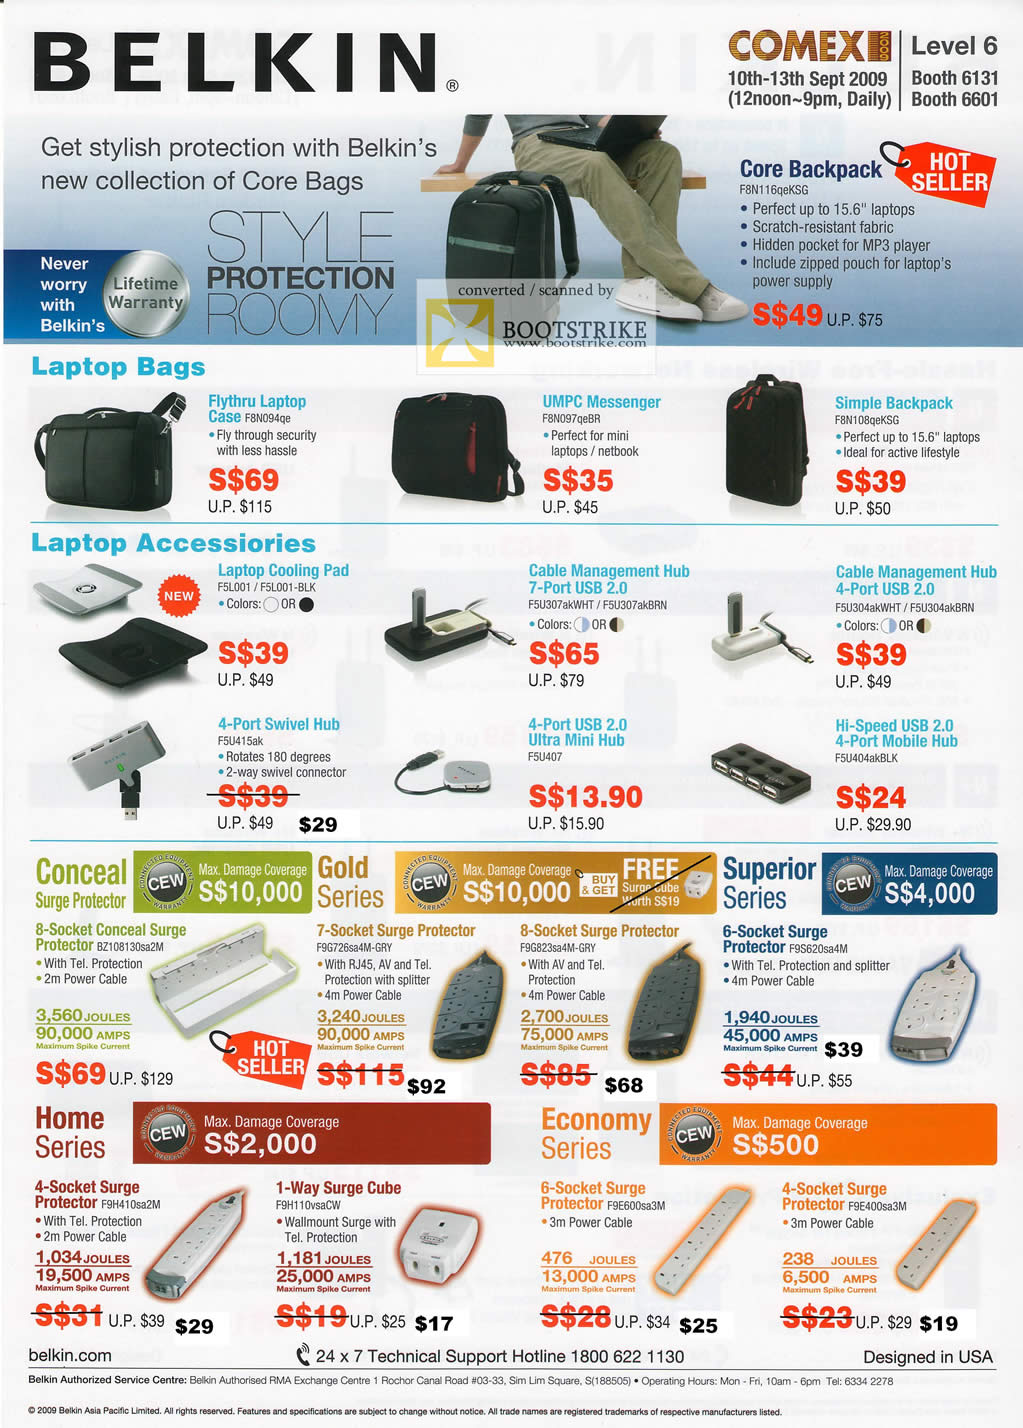 Comex 2009 price list image brochure of Belkin Laptop Bags Accessories Surge Protector